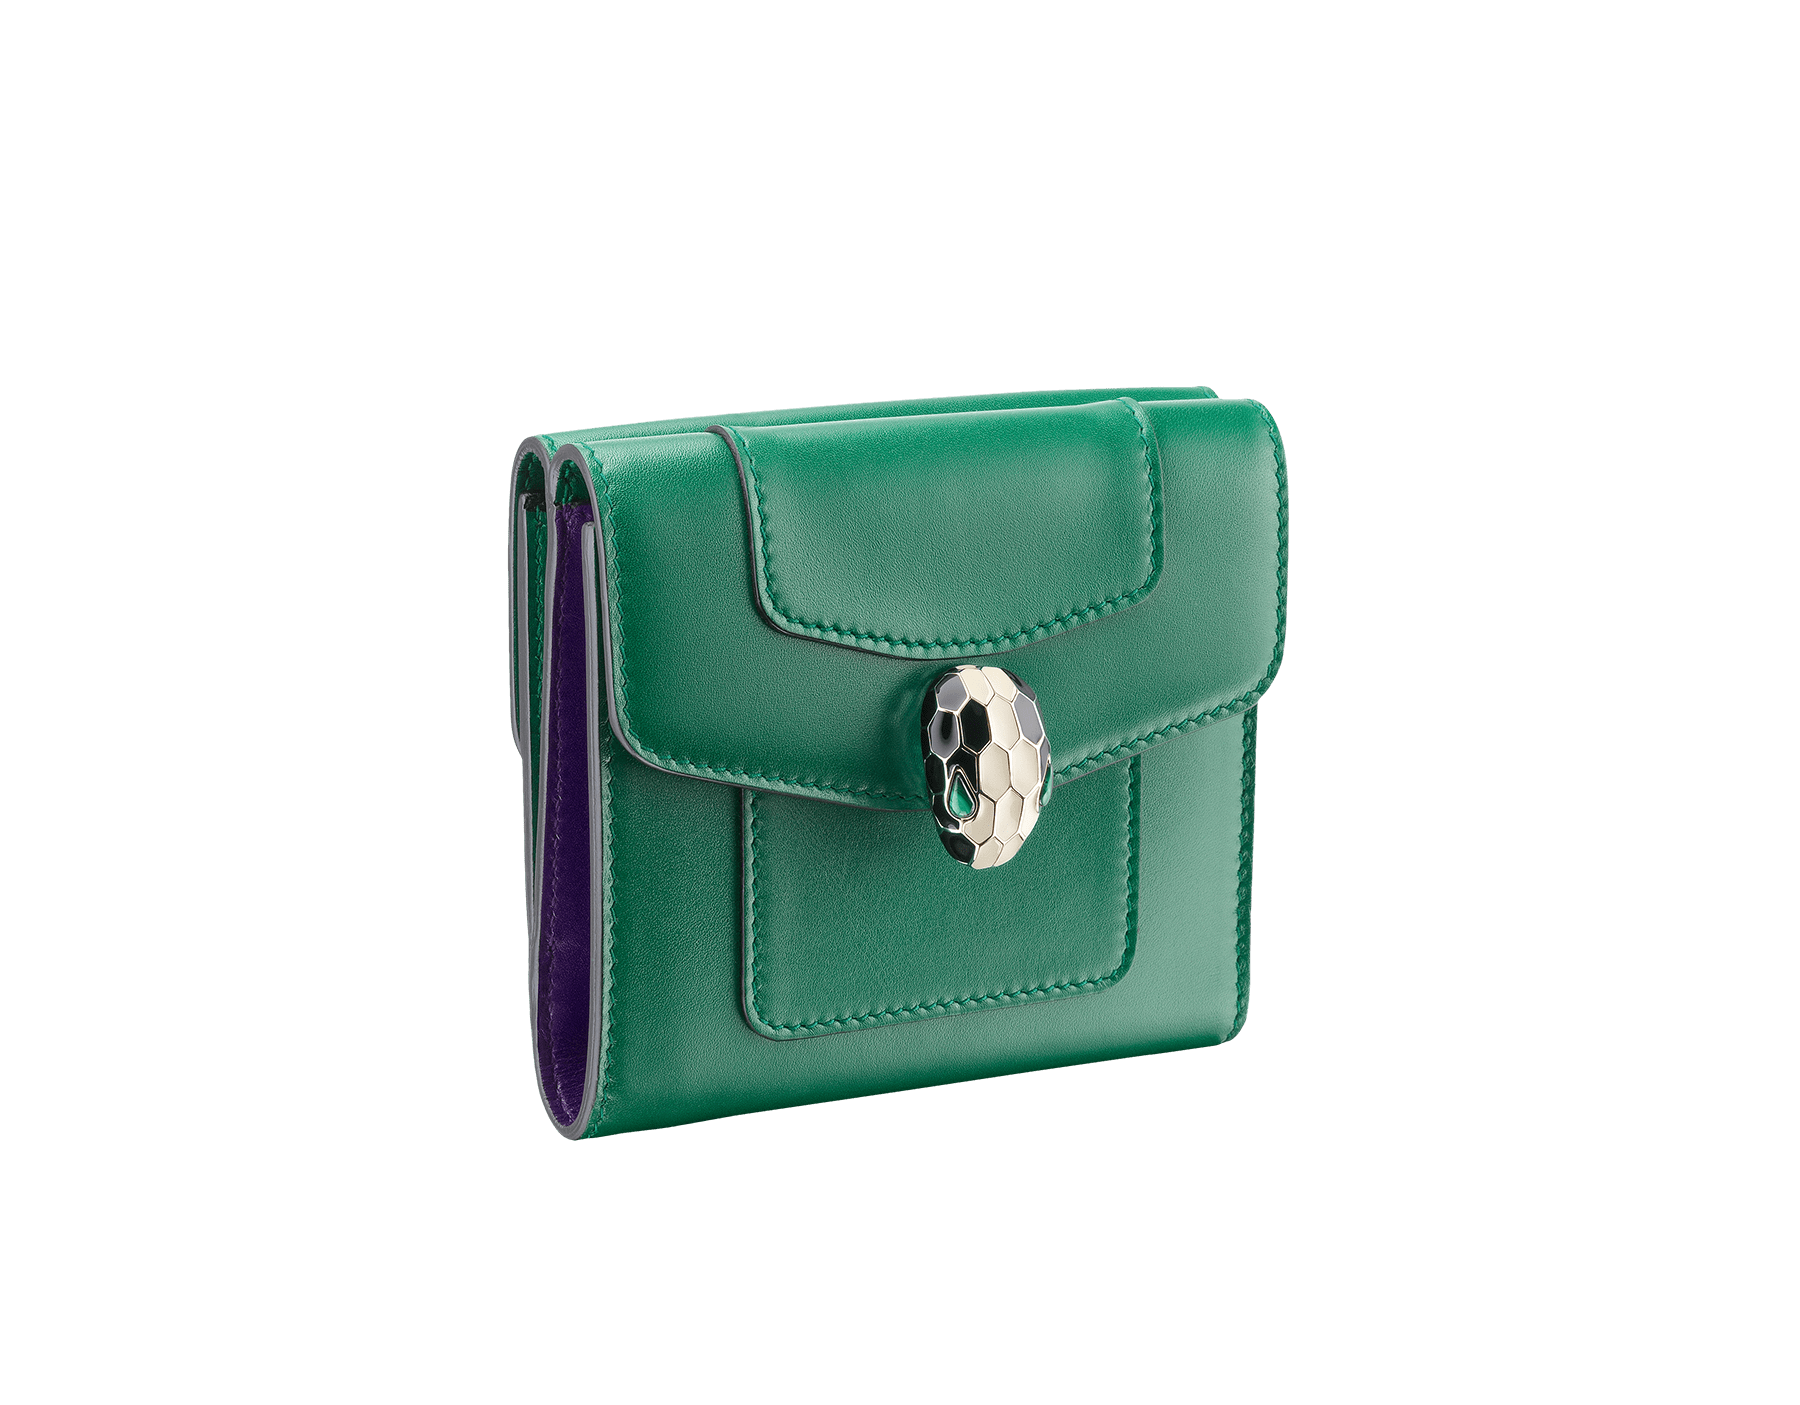 Square compact wallet in emerald green calf leather and violet amethyst calf leather. Brass light gold plated hardware. Serpenti head stud closure in black and white enamel with eyes in green malachite. Double flap cover. Six credit card slots, one bill compartment, two additional compartments and a change holder. Also available in other colours. 11 x 10 cm. - 4.3 x 3.9 281382 image 1